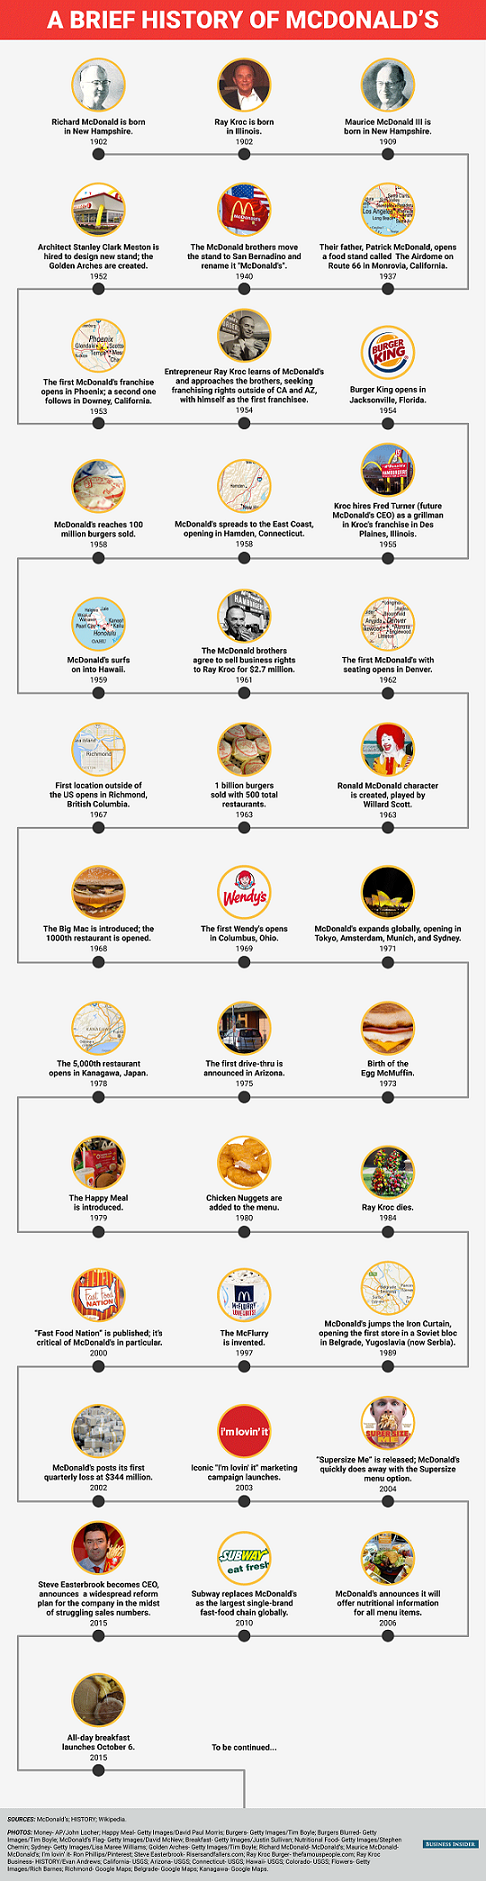 How McDonald's Became The Leader In The Fast Food Industry